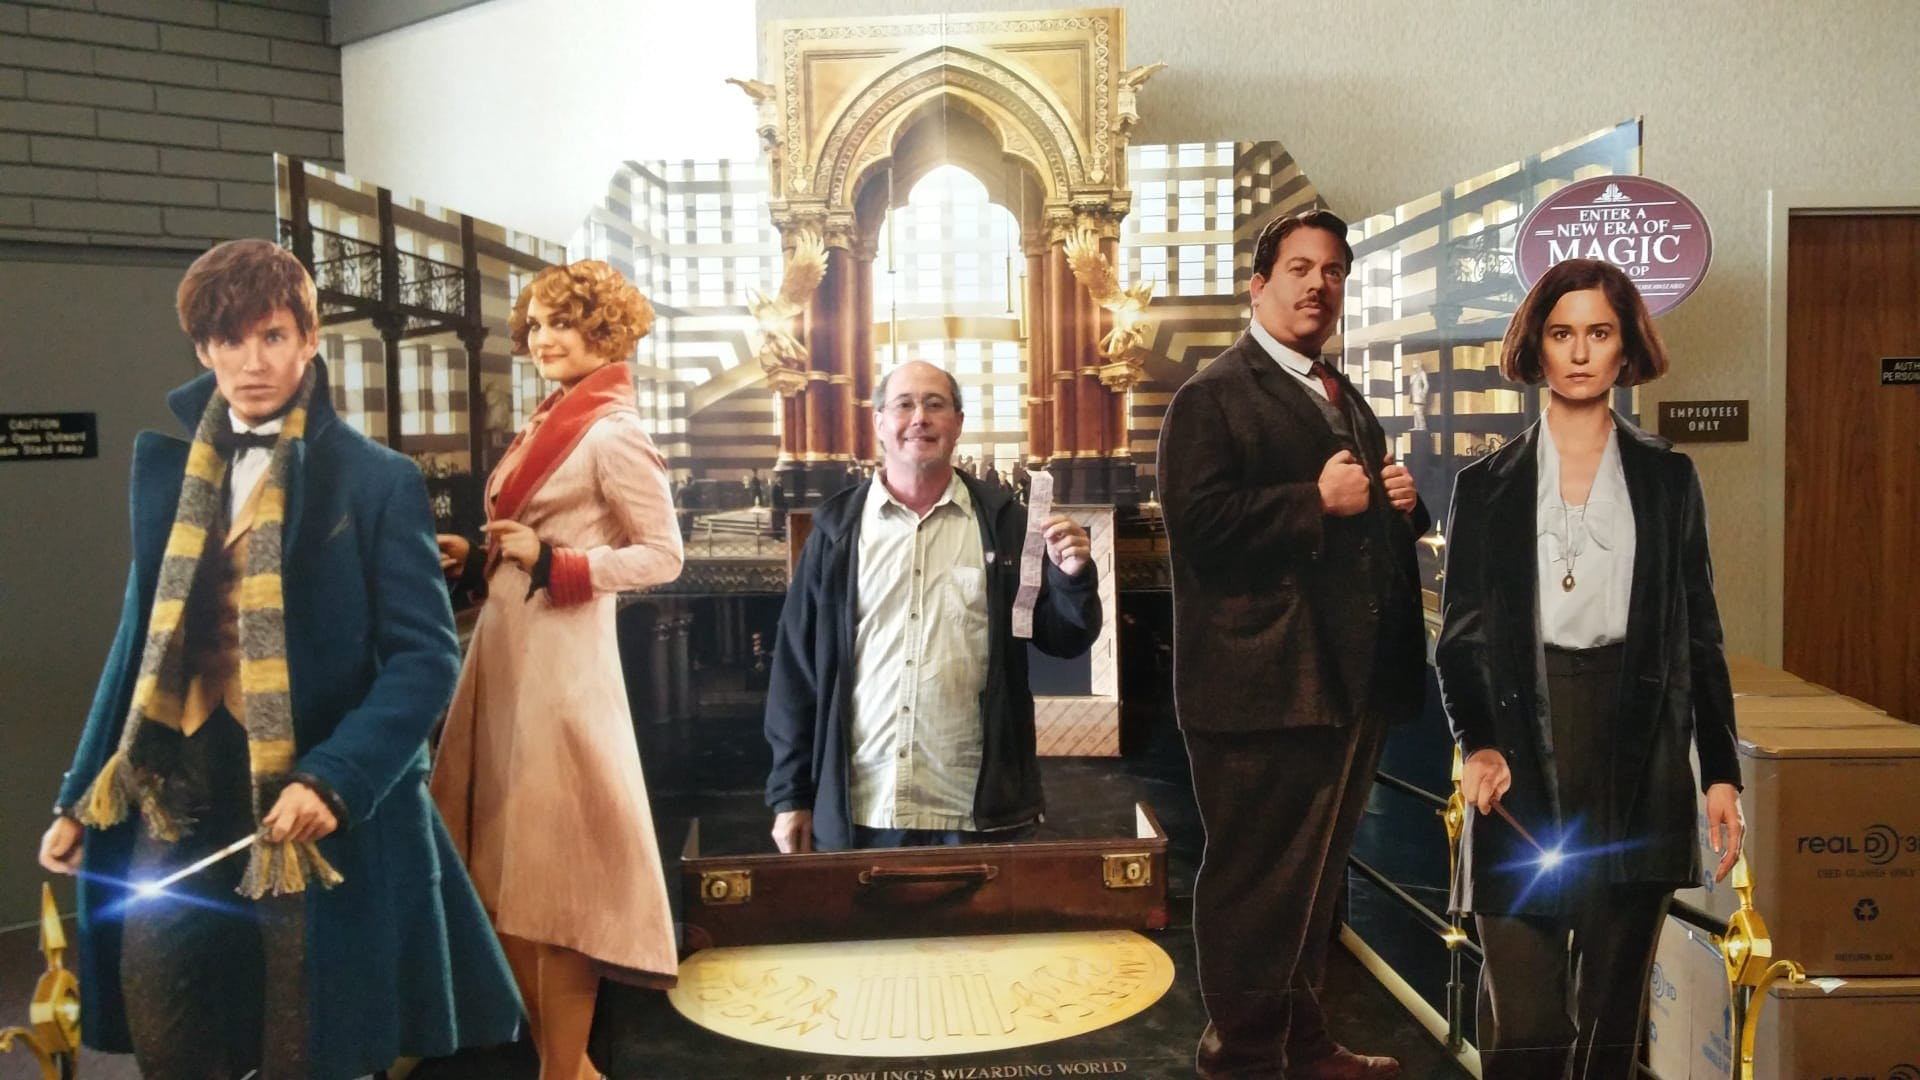 Ben Barres posing with characters from the Harry Potter movie Fantastic Beasts and Where to Find Them